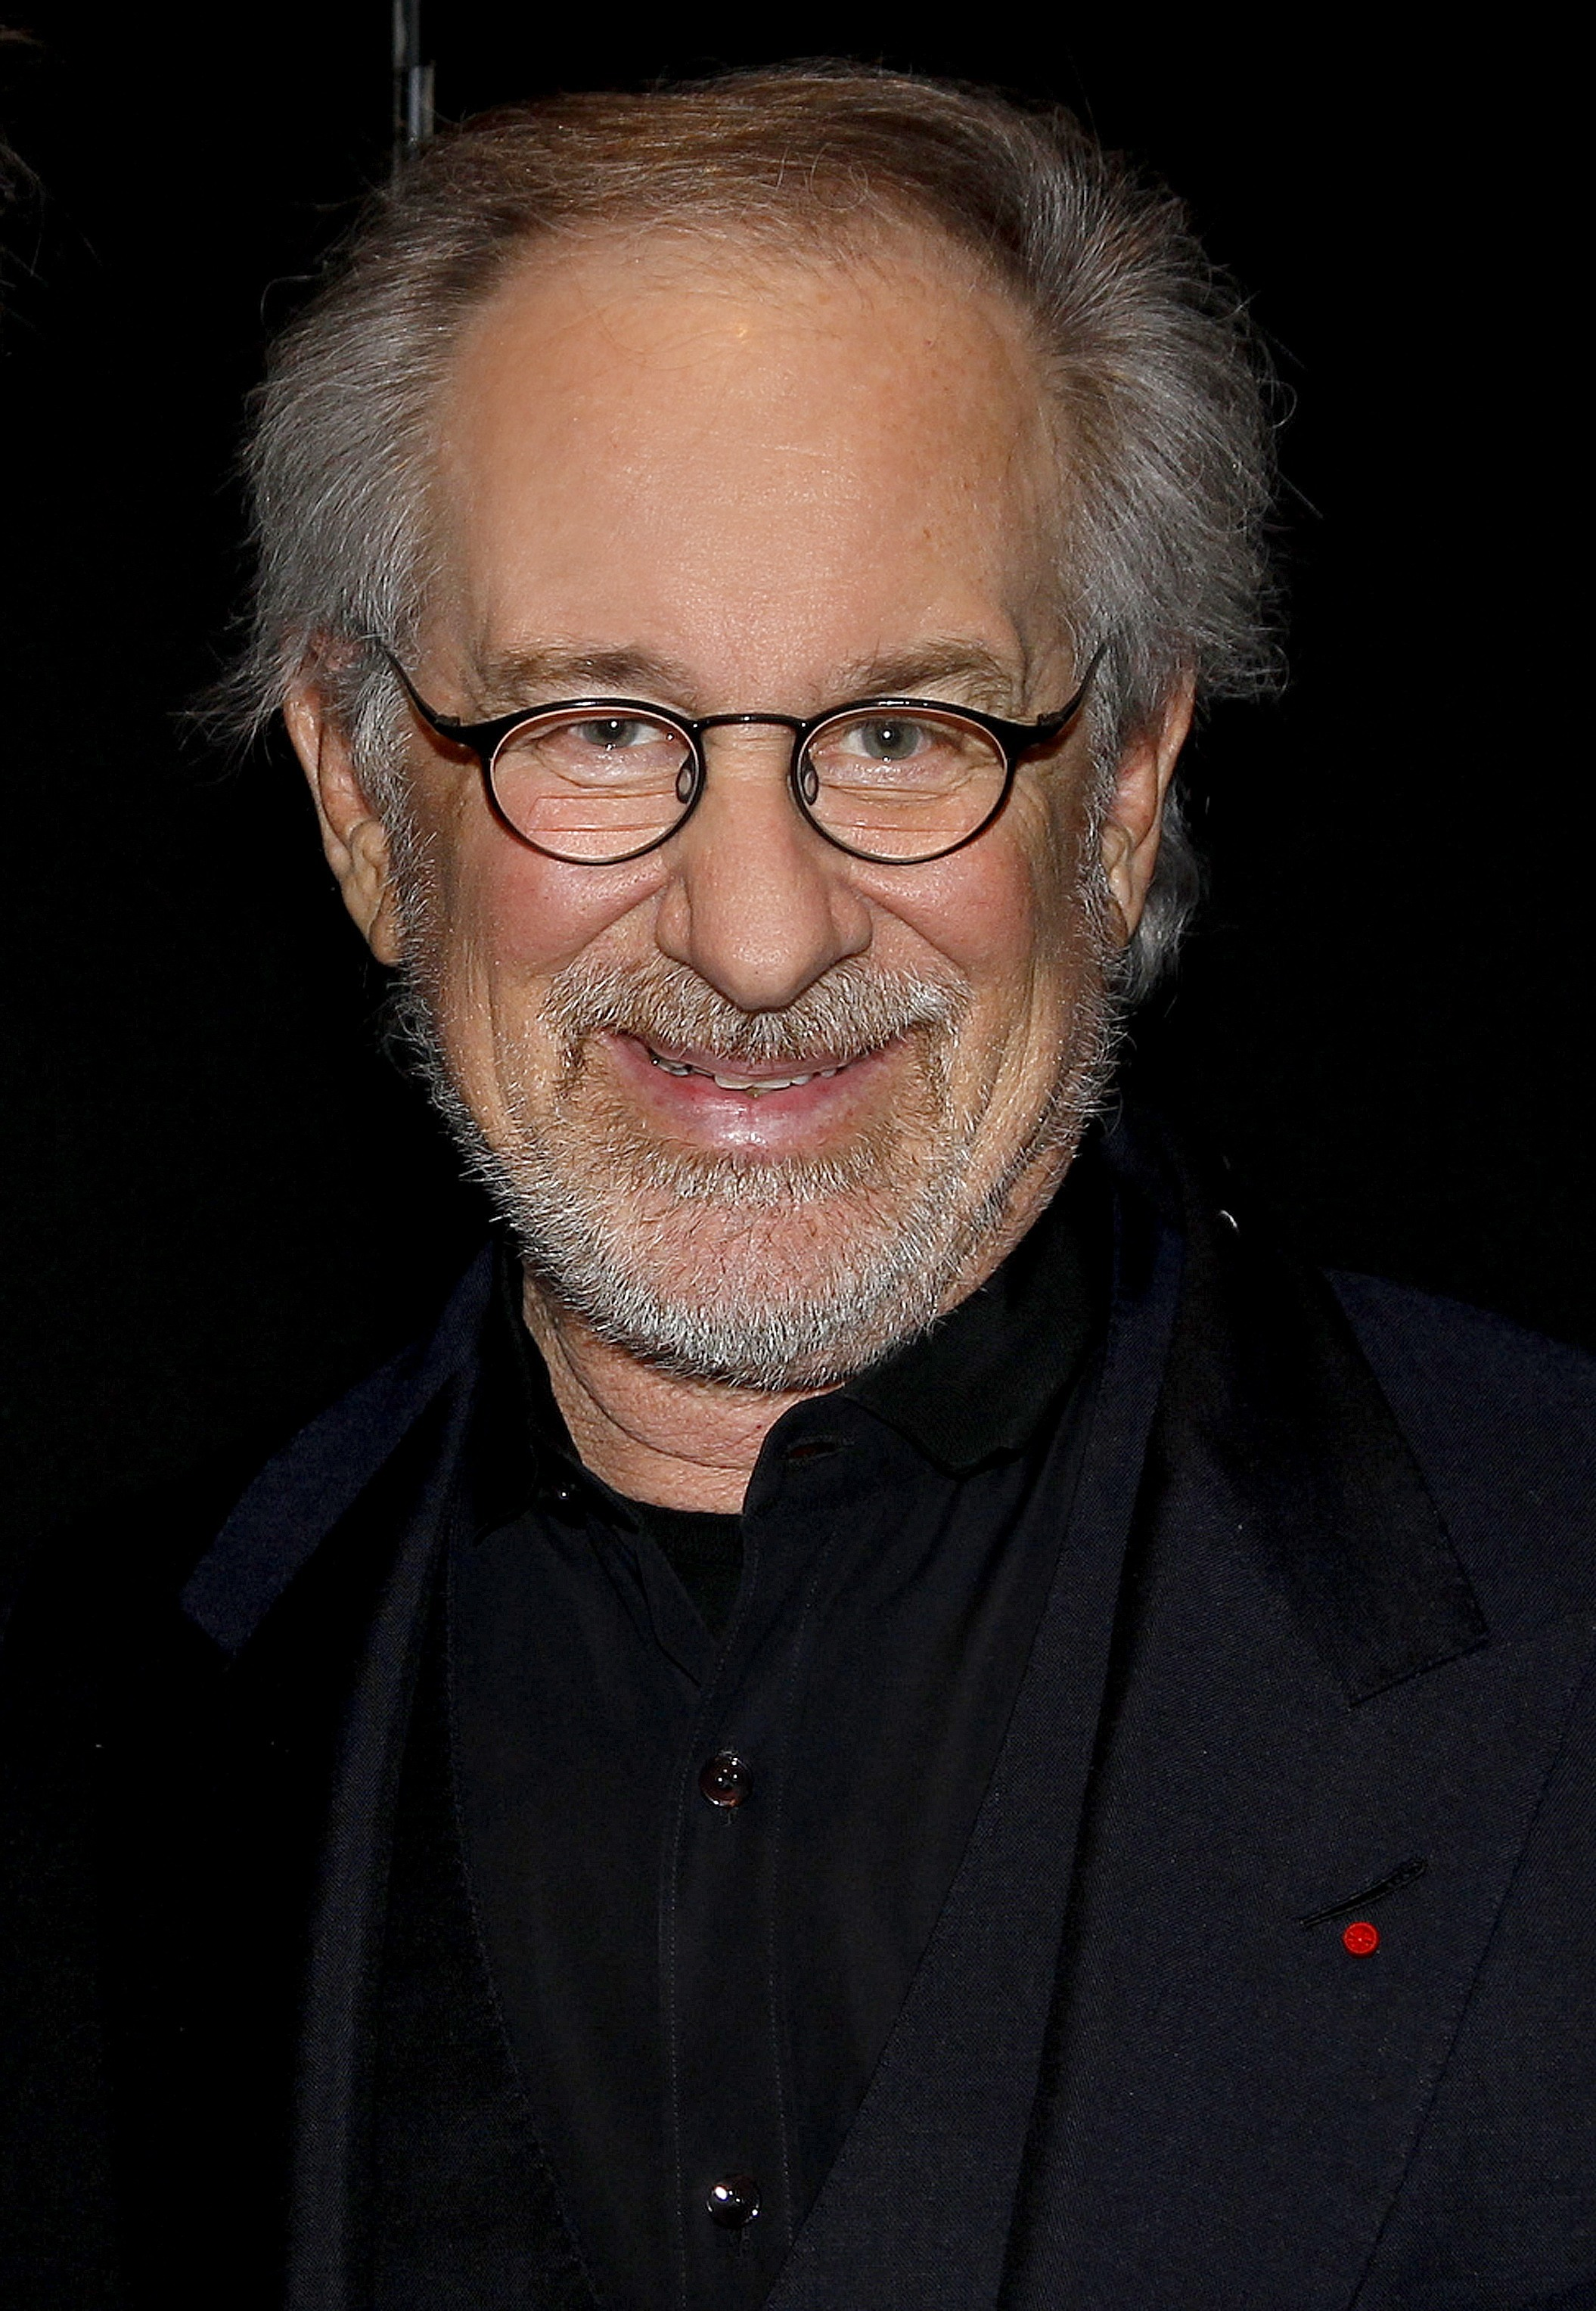 essay biography of steven spielberg Steven spielberg at this day and age is known throughout the world for his award-winning, spectacular movies of all time nevertheless, there was a day when spielberg was nothing more than a small, depressed child.